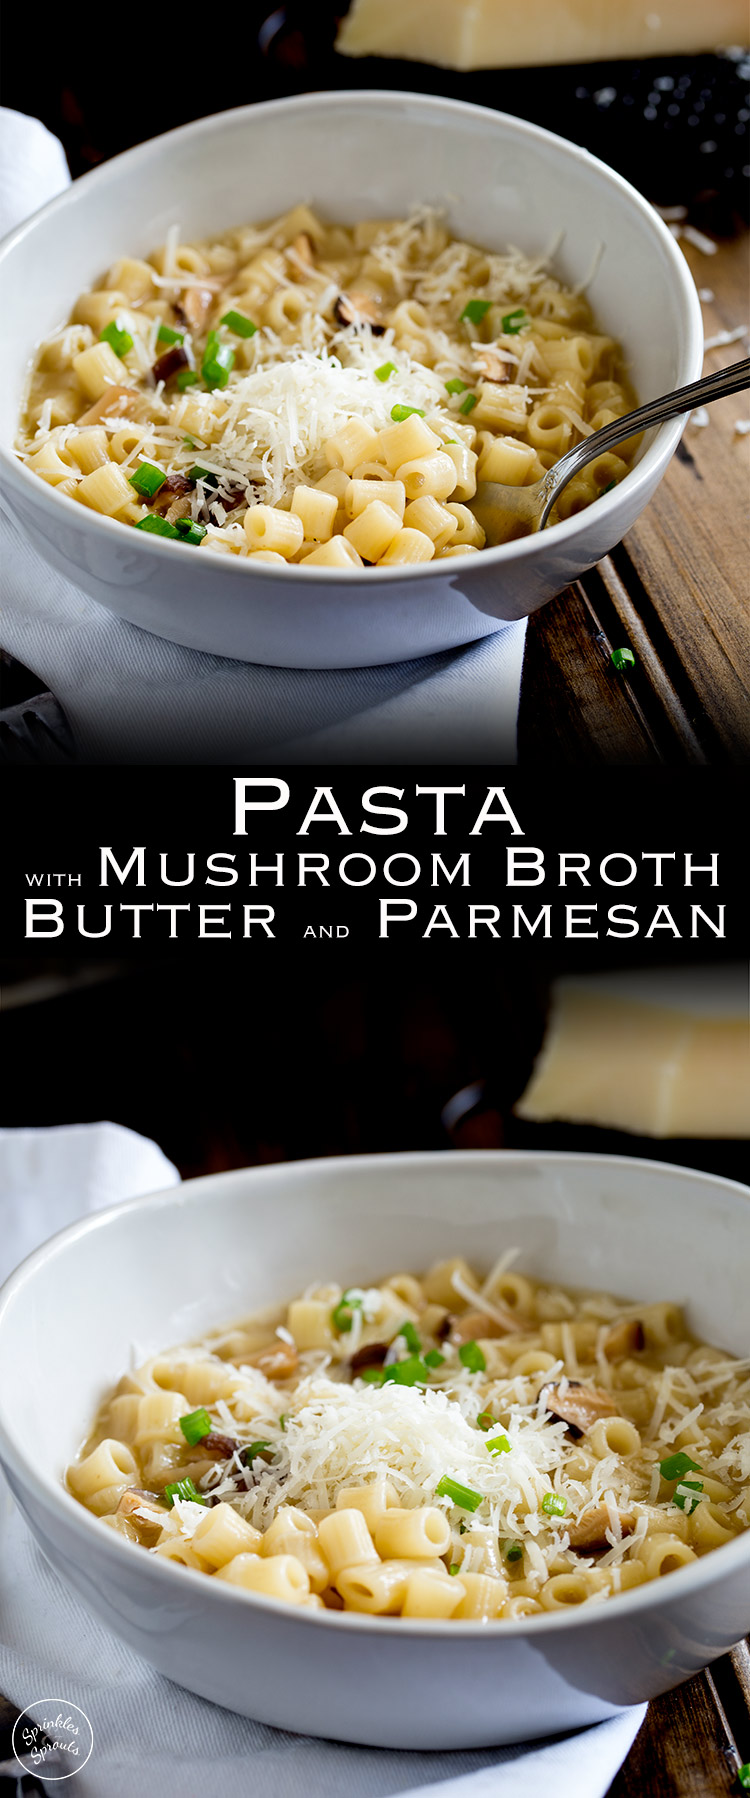 Pasta with Mushroom Broth, Butter and Parmesan. A comforting bowl of pasta with mushroom broth, butter and parmesan. This vegetarian pasta dish is sure you make a regular appearance on your menu as it is quick and easy and tastes amazing. Dried mushrooms form the basis for this simple pasta dish that will please vegetarians and meat-eaters alike! From https://www.sprinklesandsprouts.com